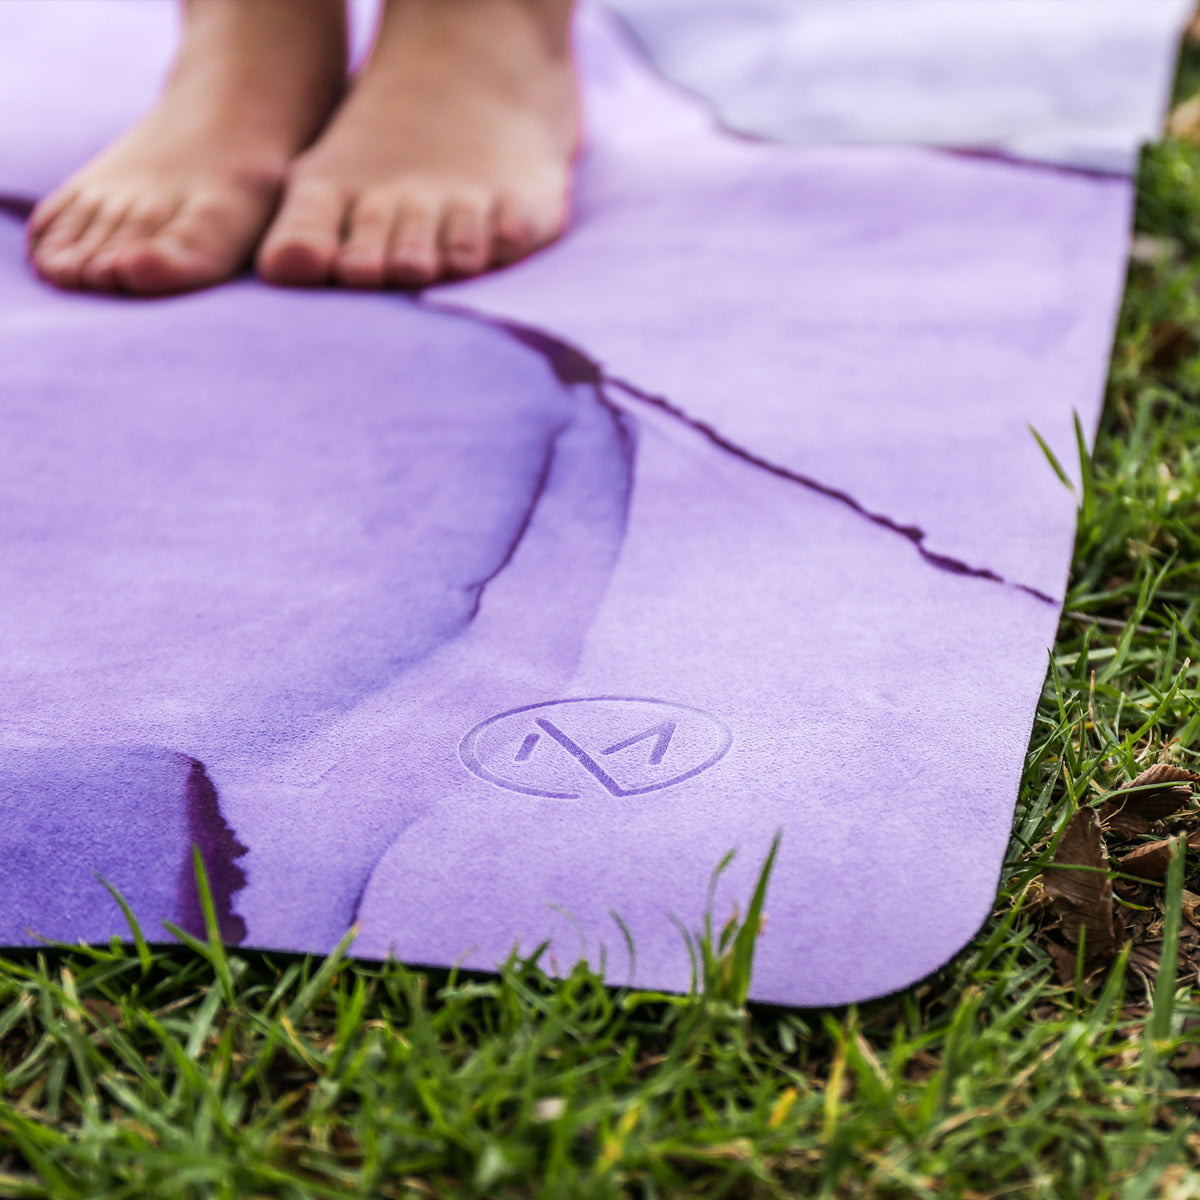 Metaform One Premium Yoga Mat